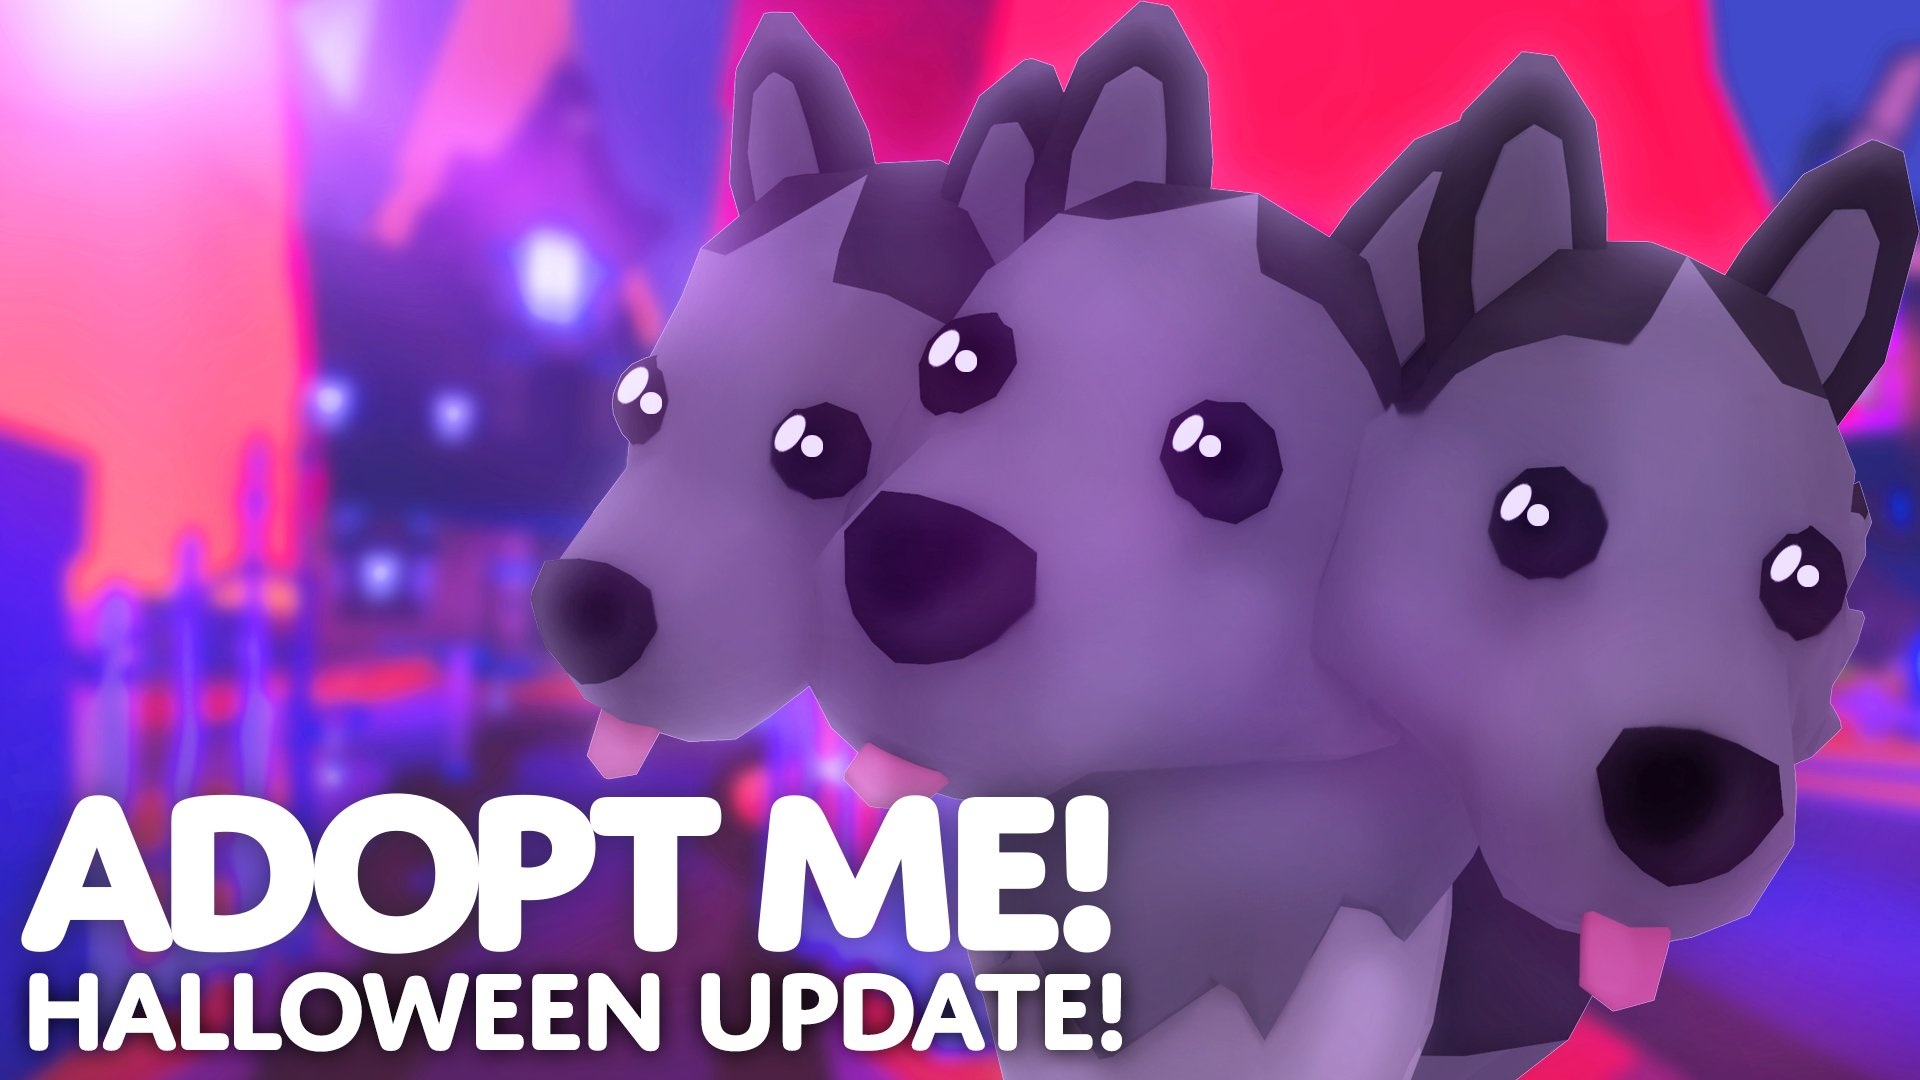 Roblox Adopt Me Halloween Update New Pets And More